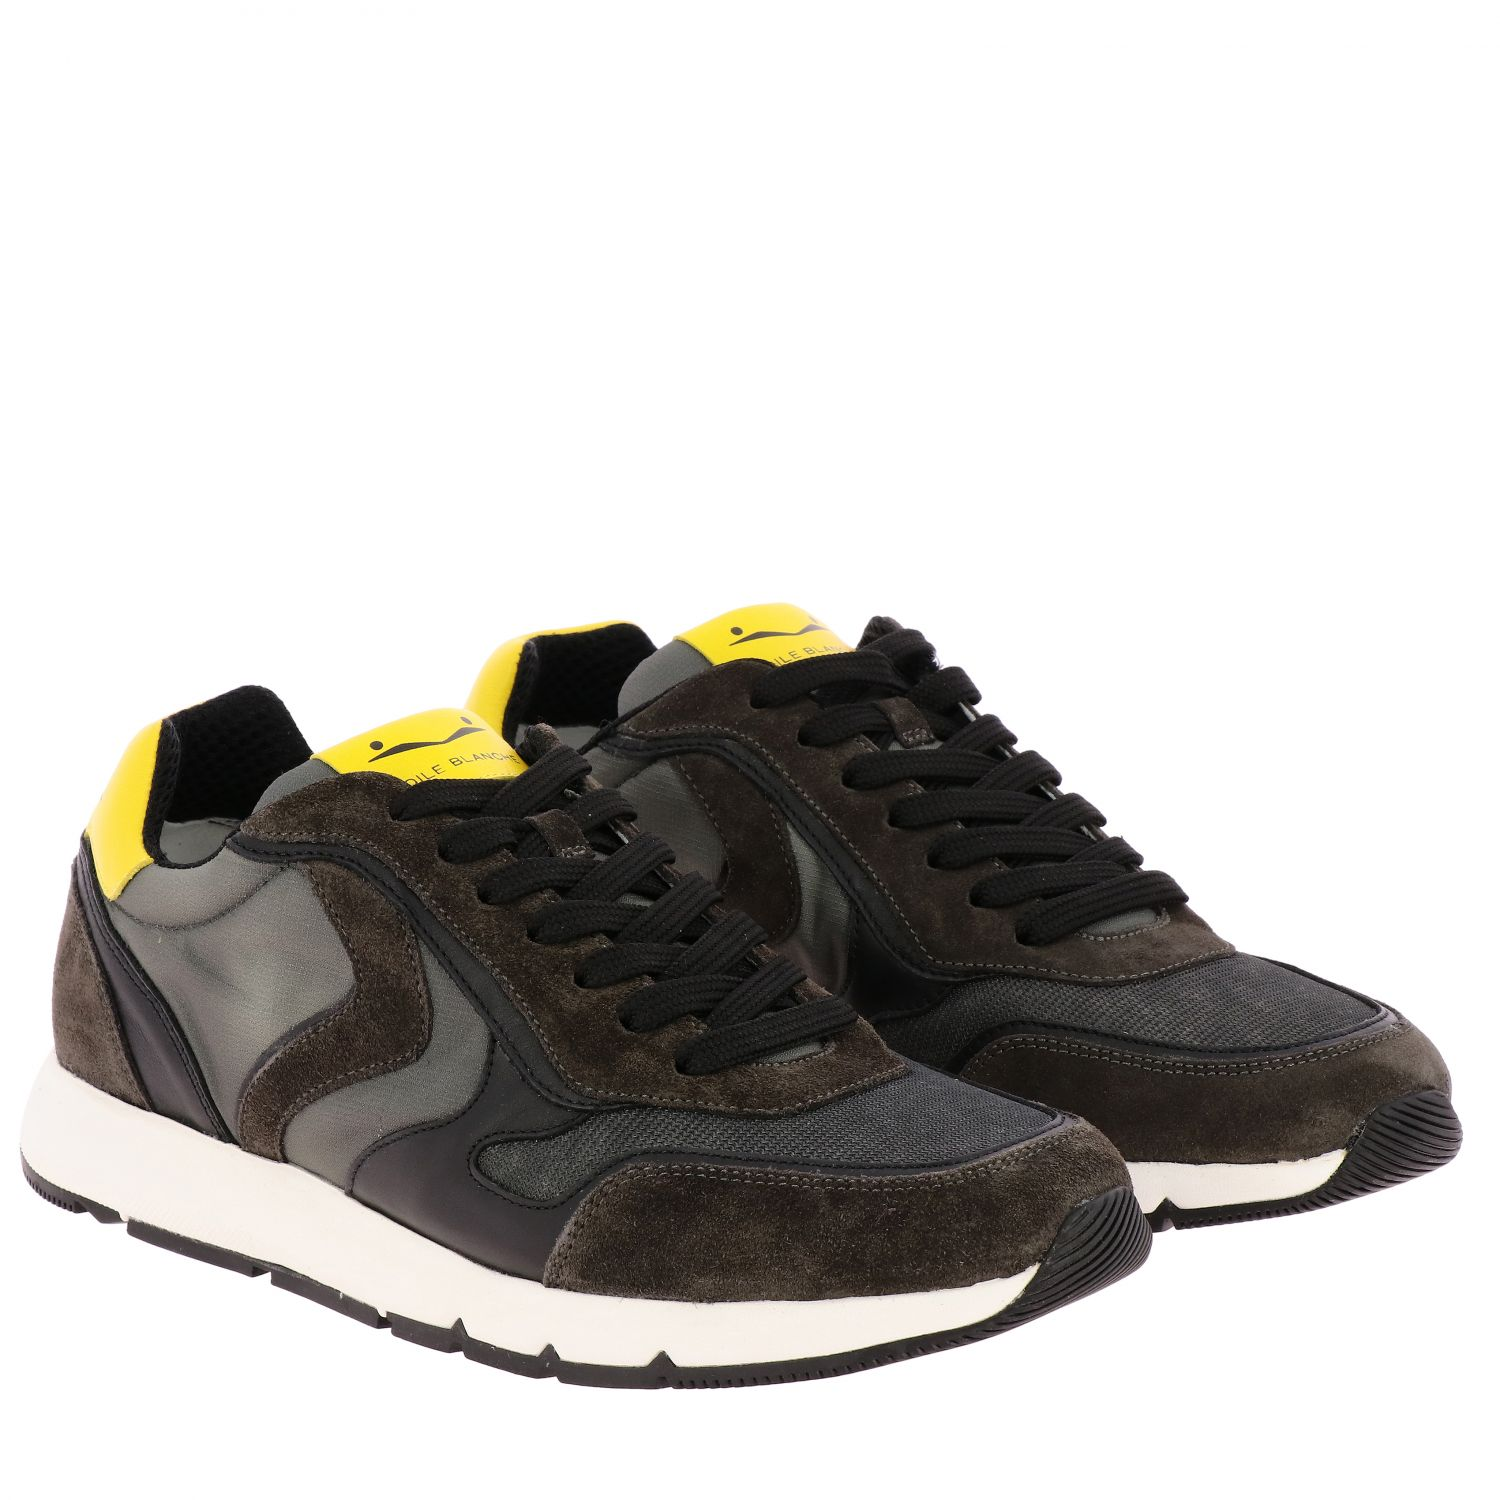 Trainers men Voile Blanche charcoal 2